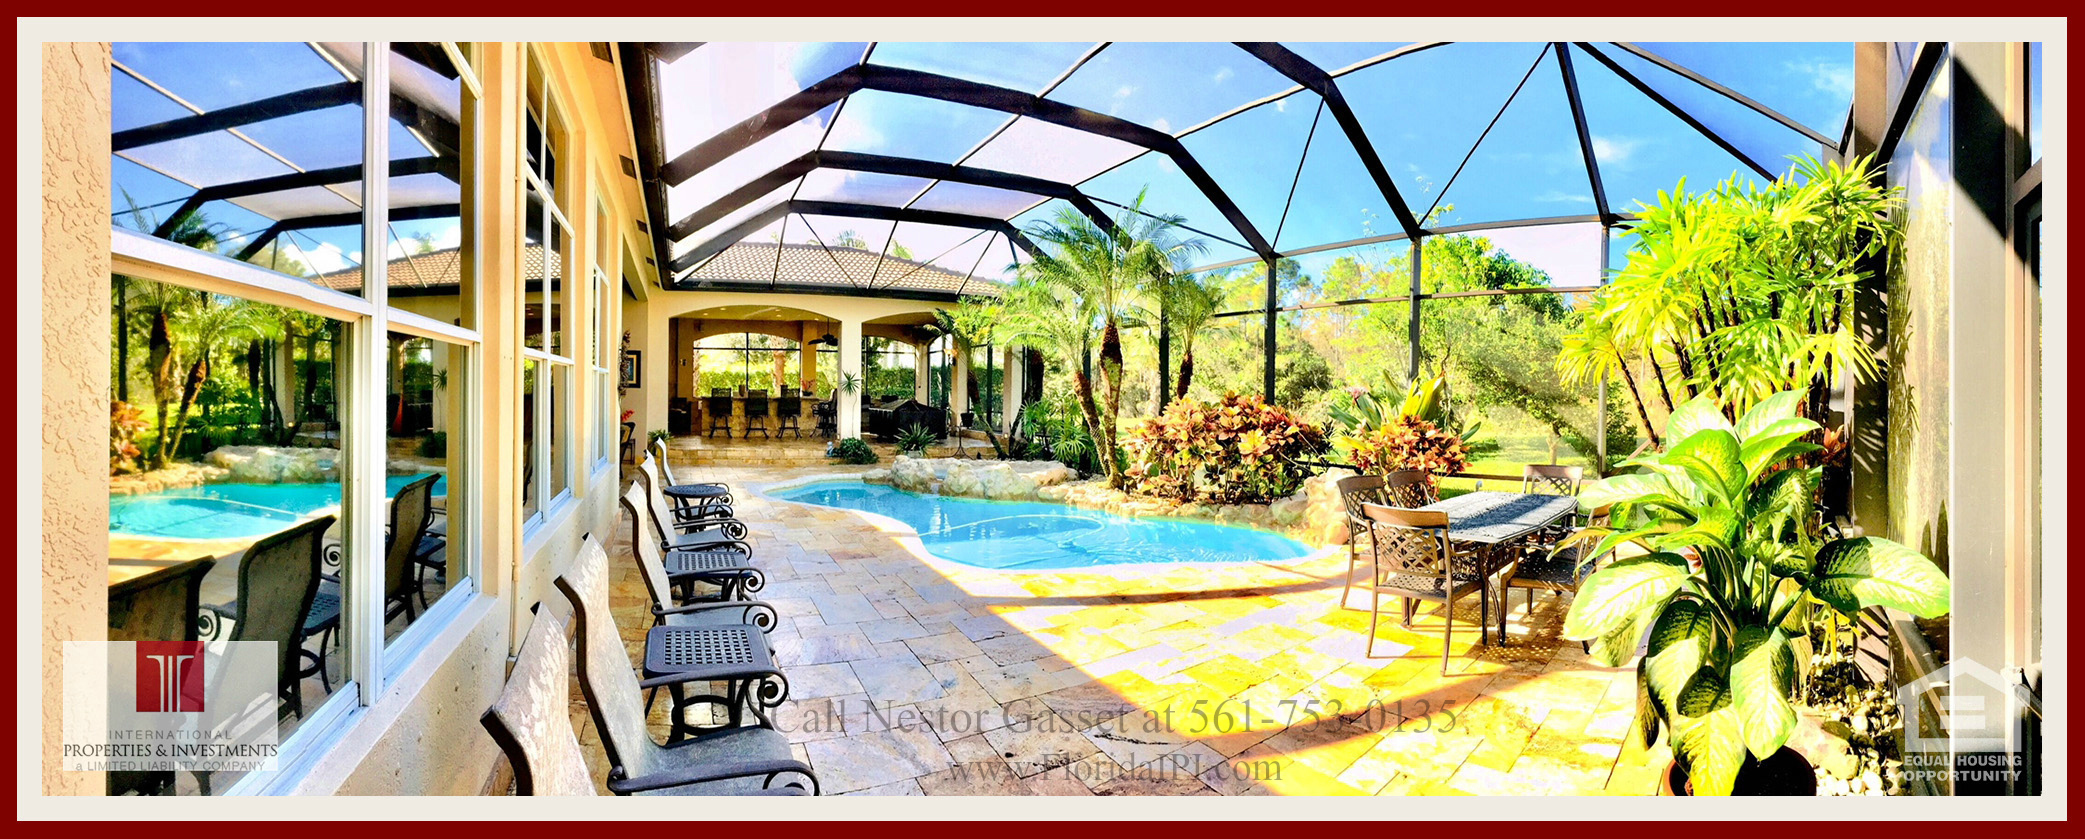 West Palm Beach Fl golf course community estate home for sale - This home for sale in The Preserve at Ironhorse features a screened swimming pool, spa, and a gazebo perfect for entertaining.